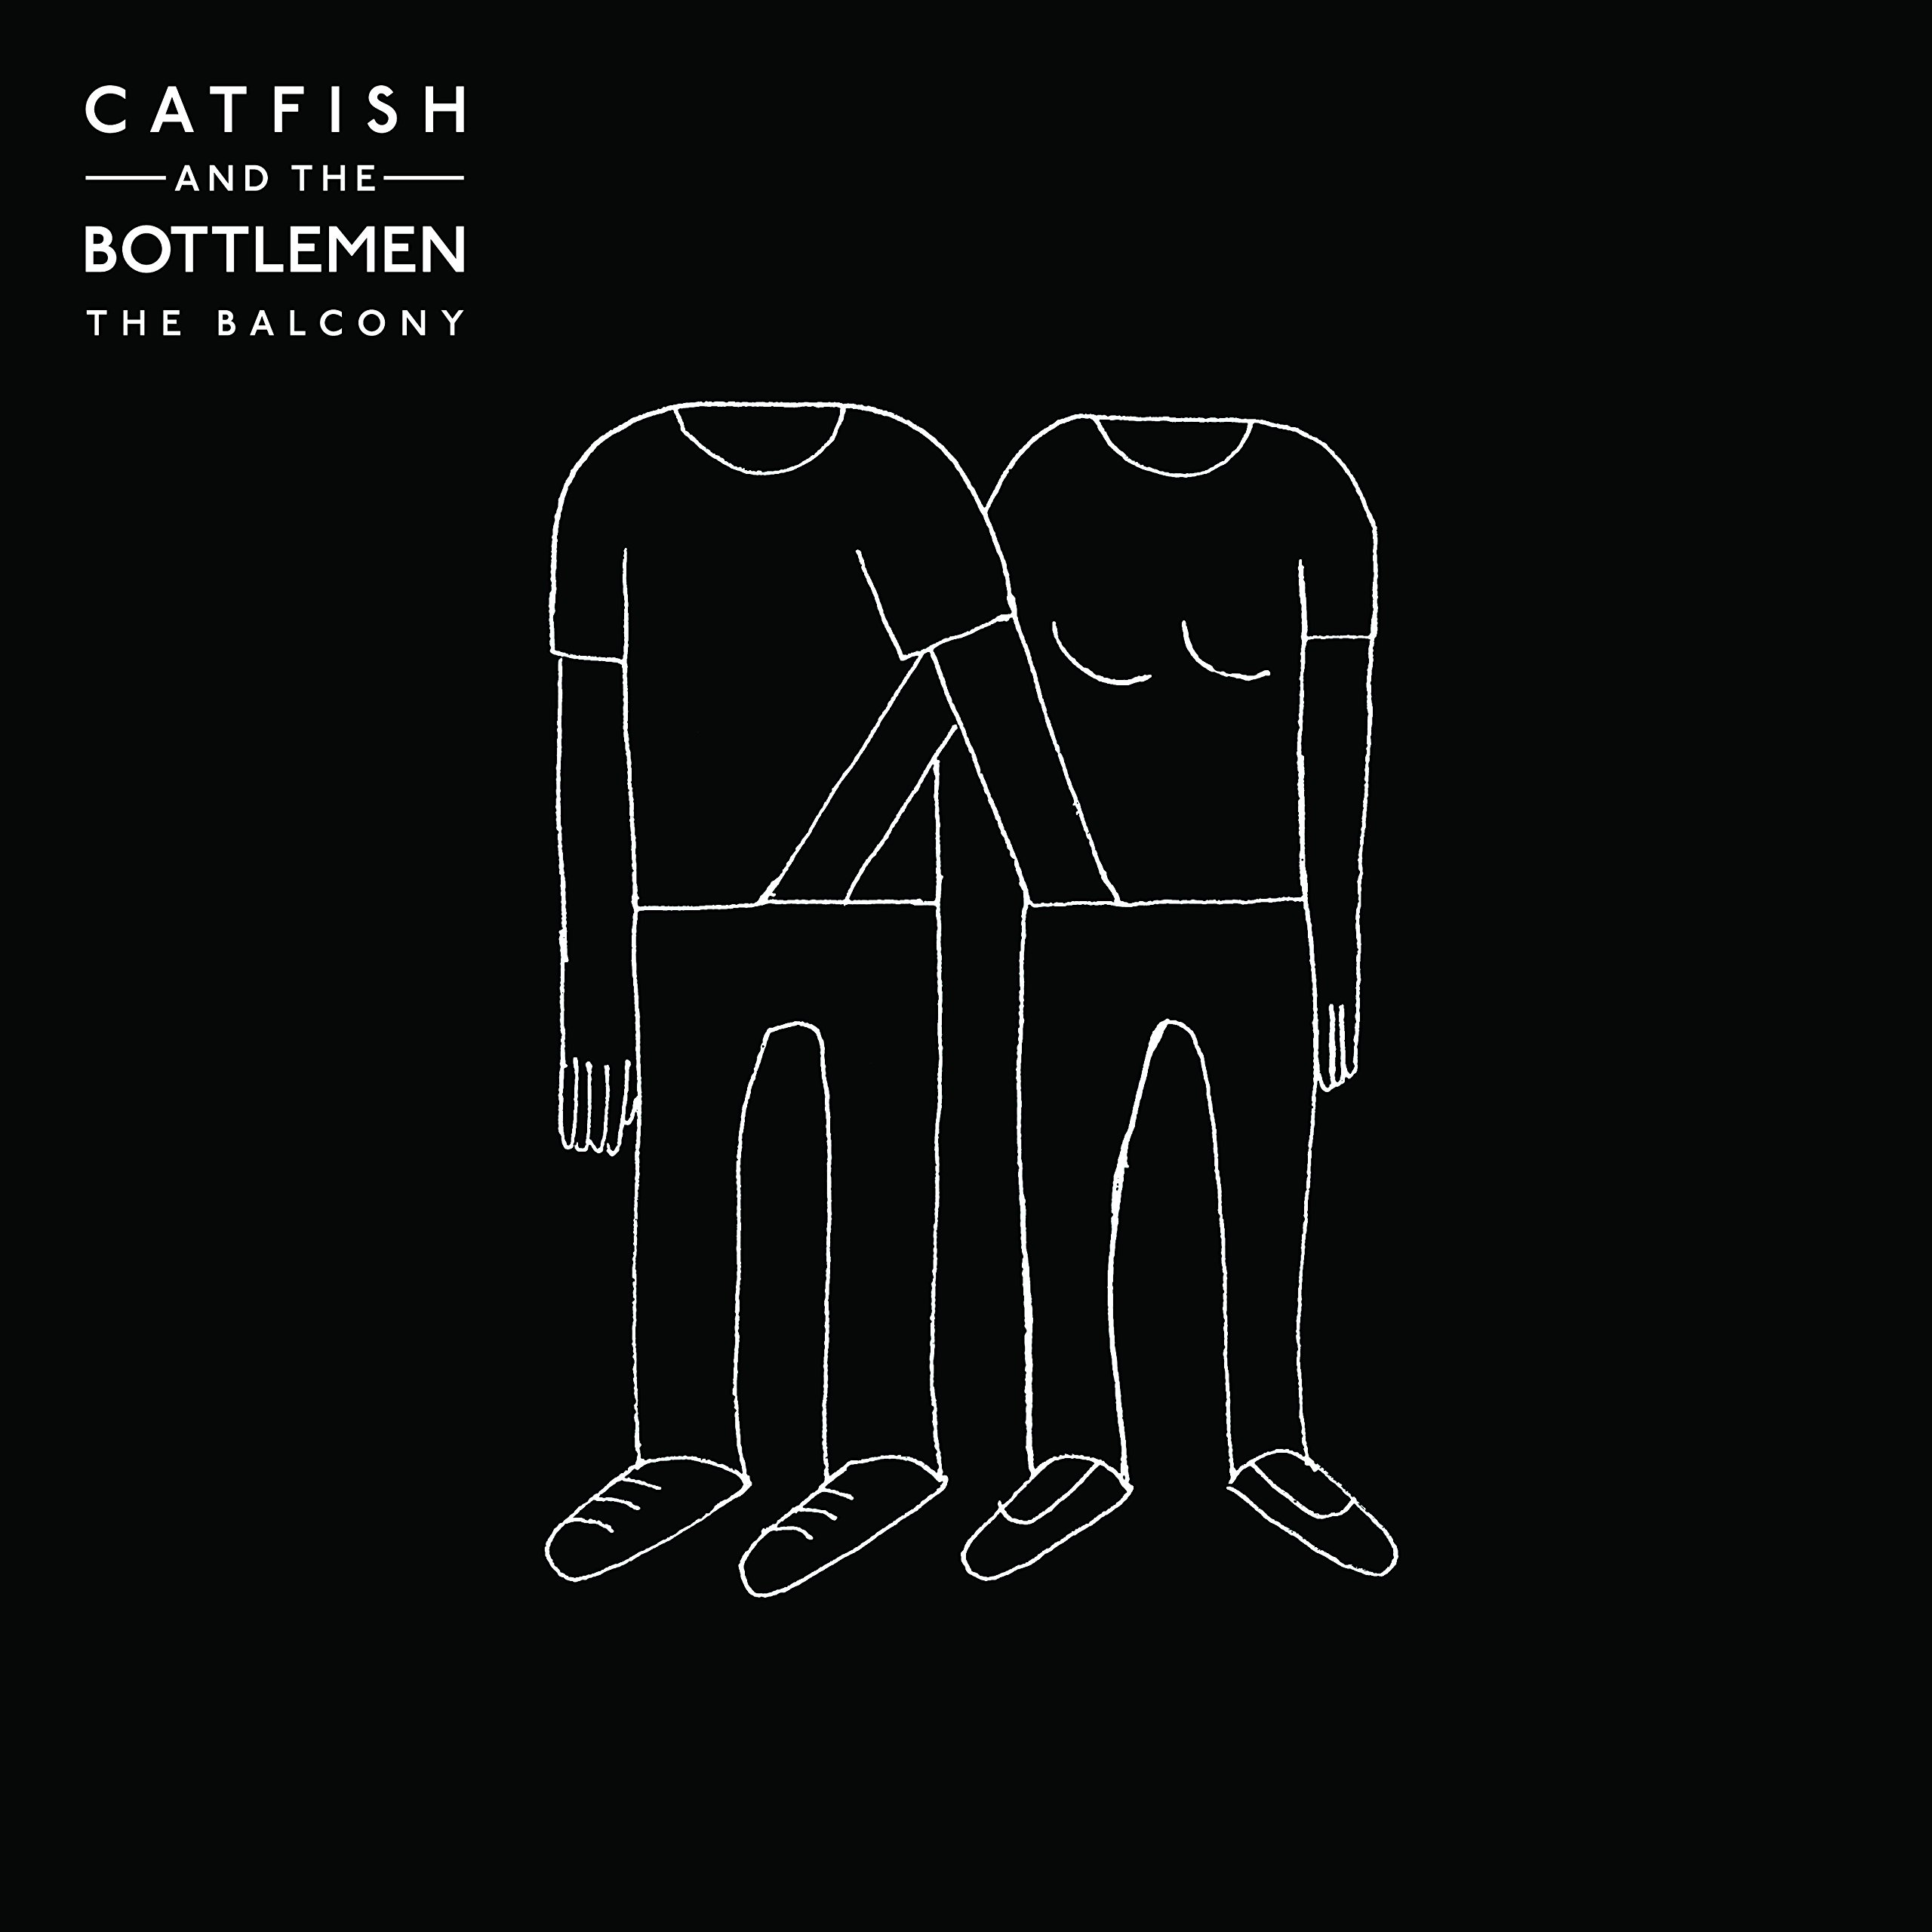 CD : Catfish & the Bottlemen - Balcony [Explicit Content]